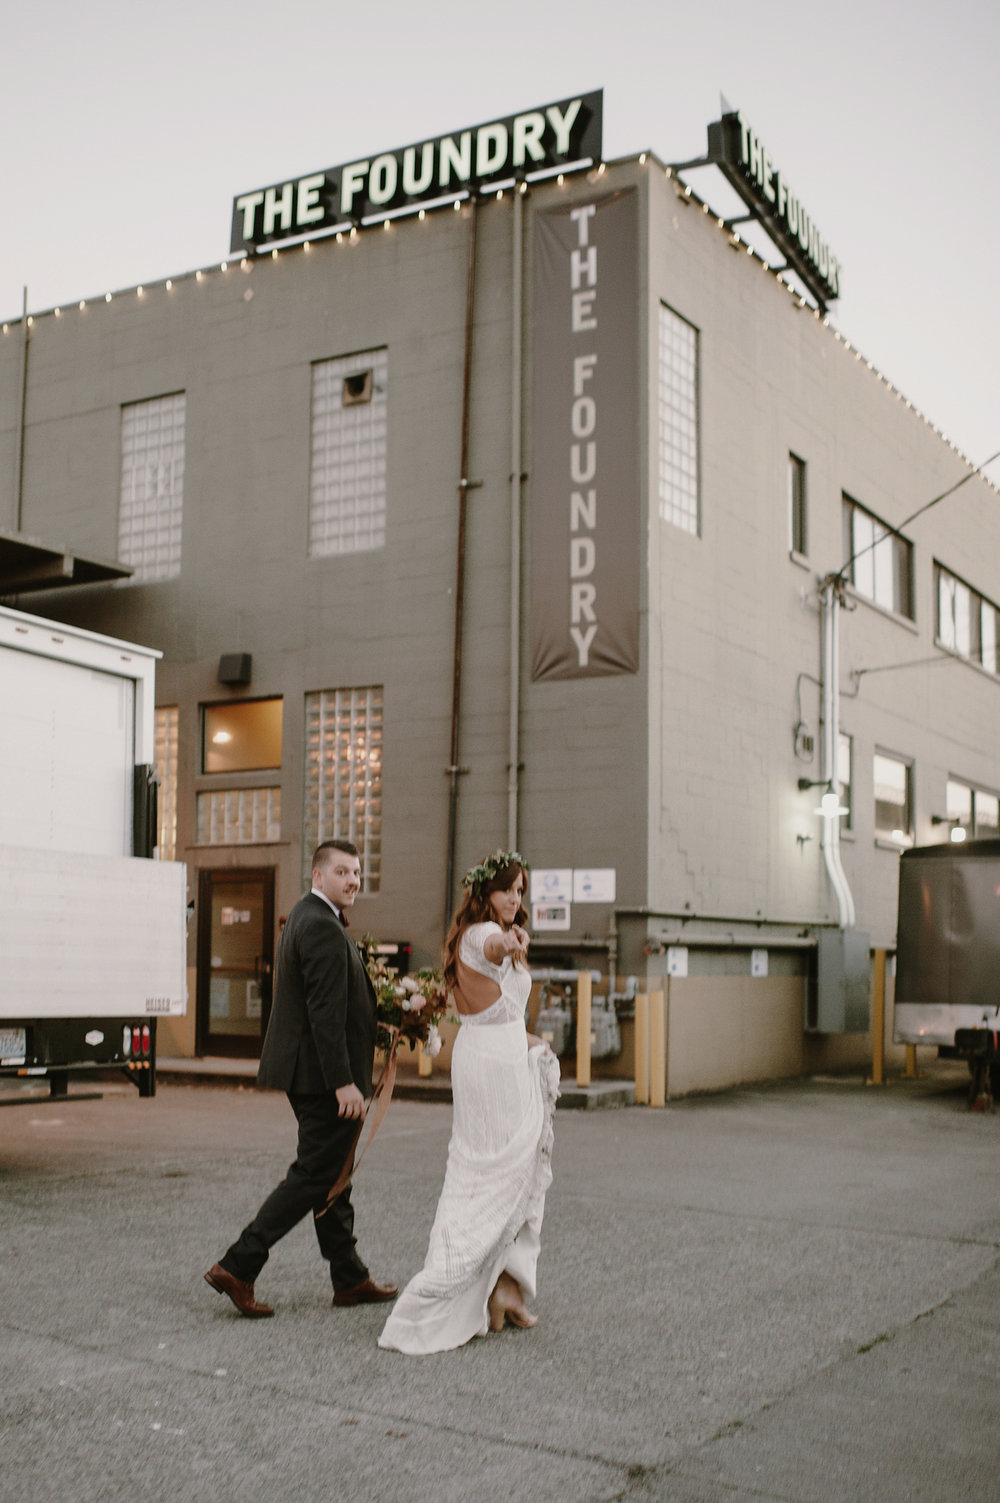 Downtown_Seattle_Wedding_Foundry_Sinclair_Moore095.JPG